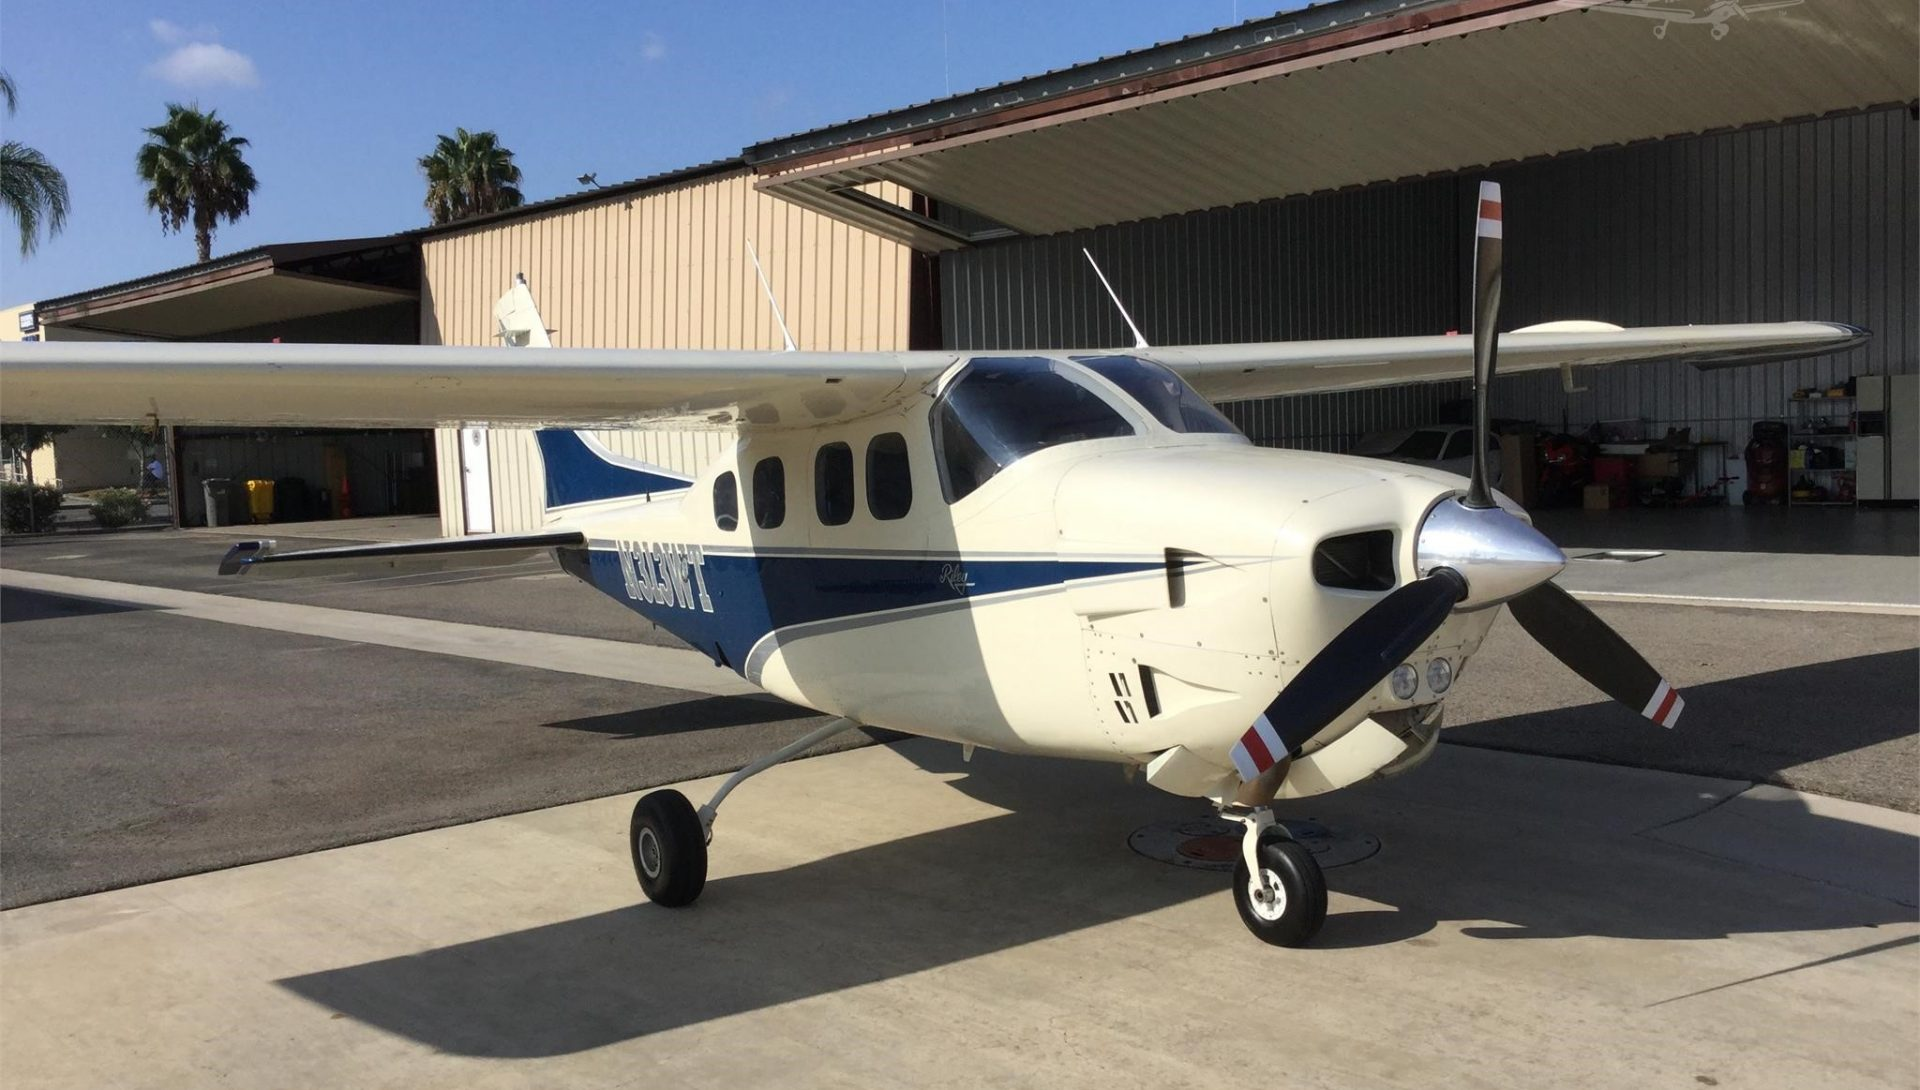 Beautiful! Riley Rocket 1979 Cessna P210N New Garmin GTN 750 & Garmin 345 ADS-B transponder w/ traffic and weather displayed on GTN 750, W/STOL, Speed brakes! Turbo intercooler! June Service Center annual inspection just completed!